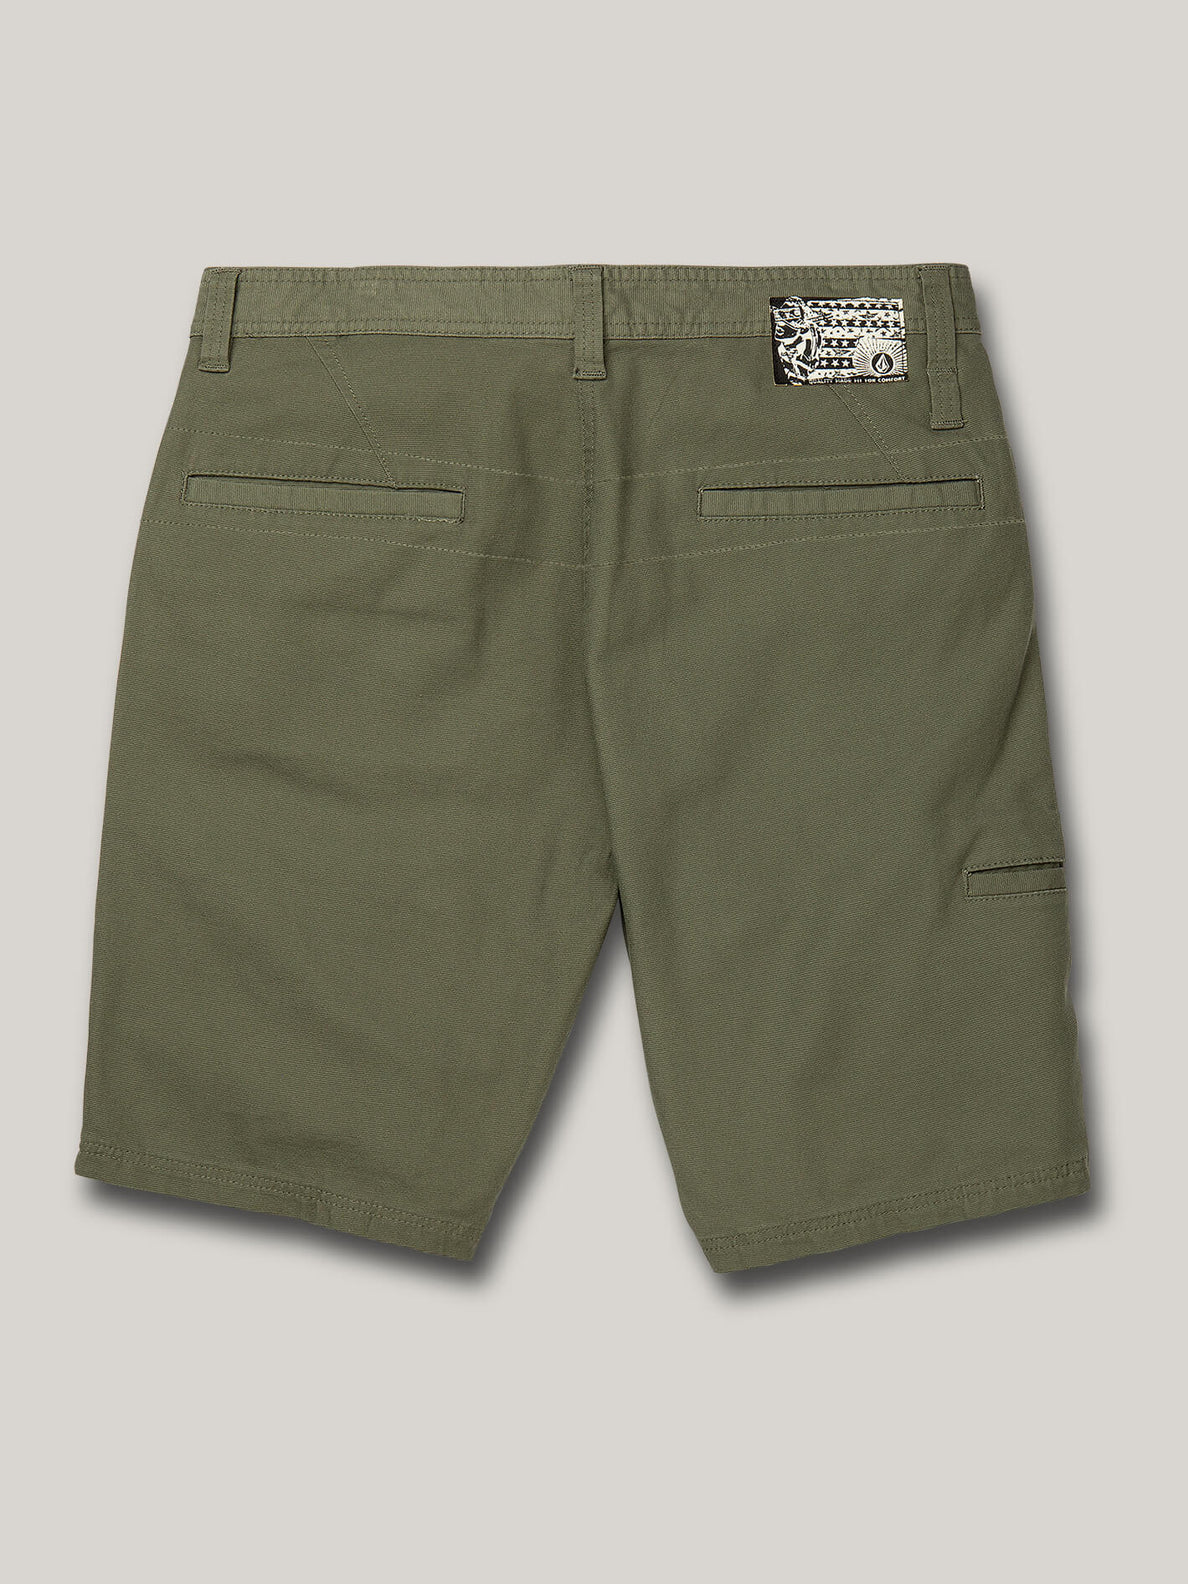 Clockworks Shorts - Army Green Combo (A0922000_ARC) [B]